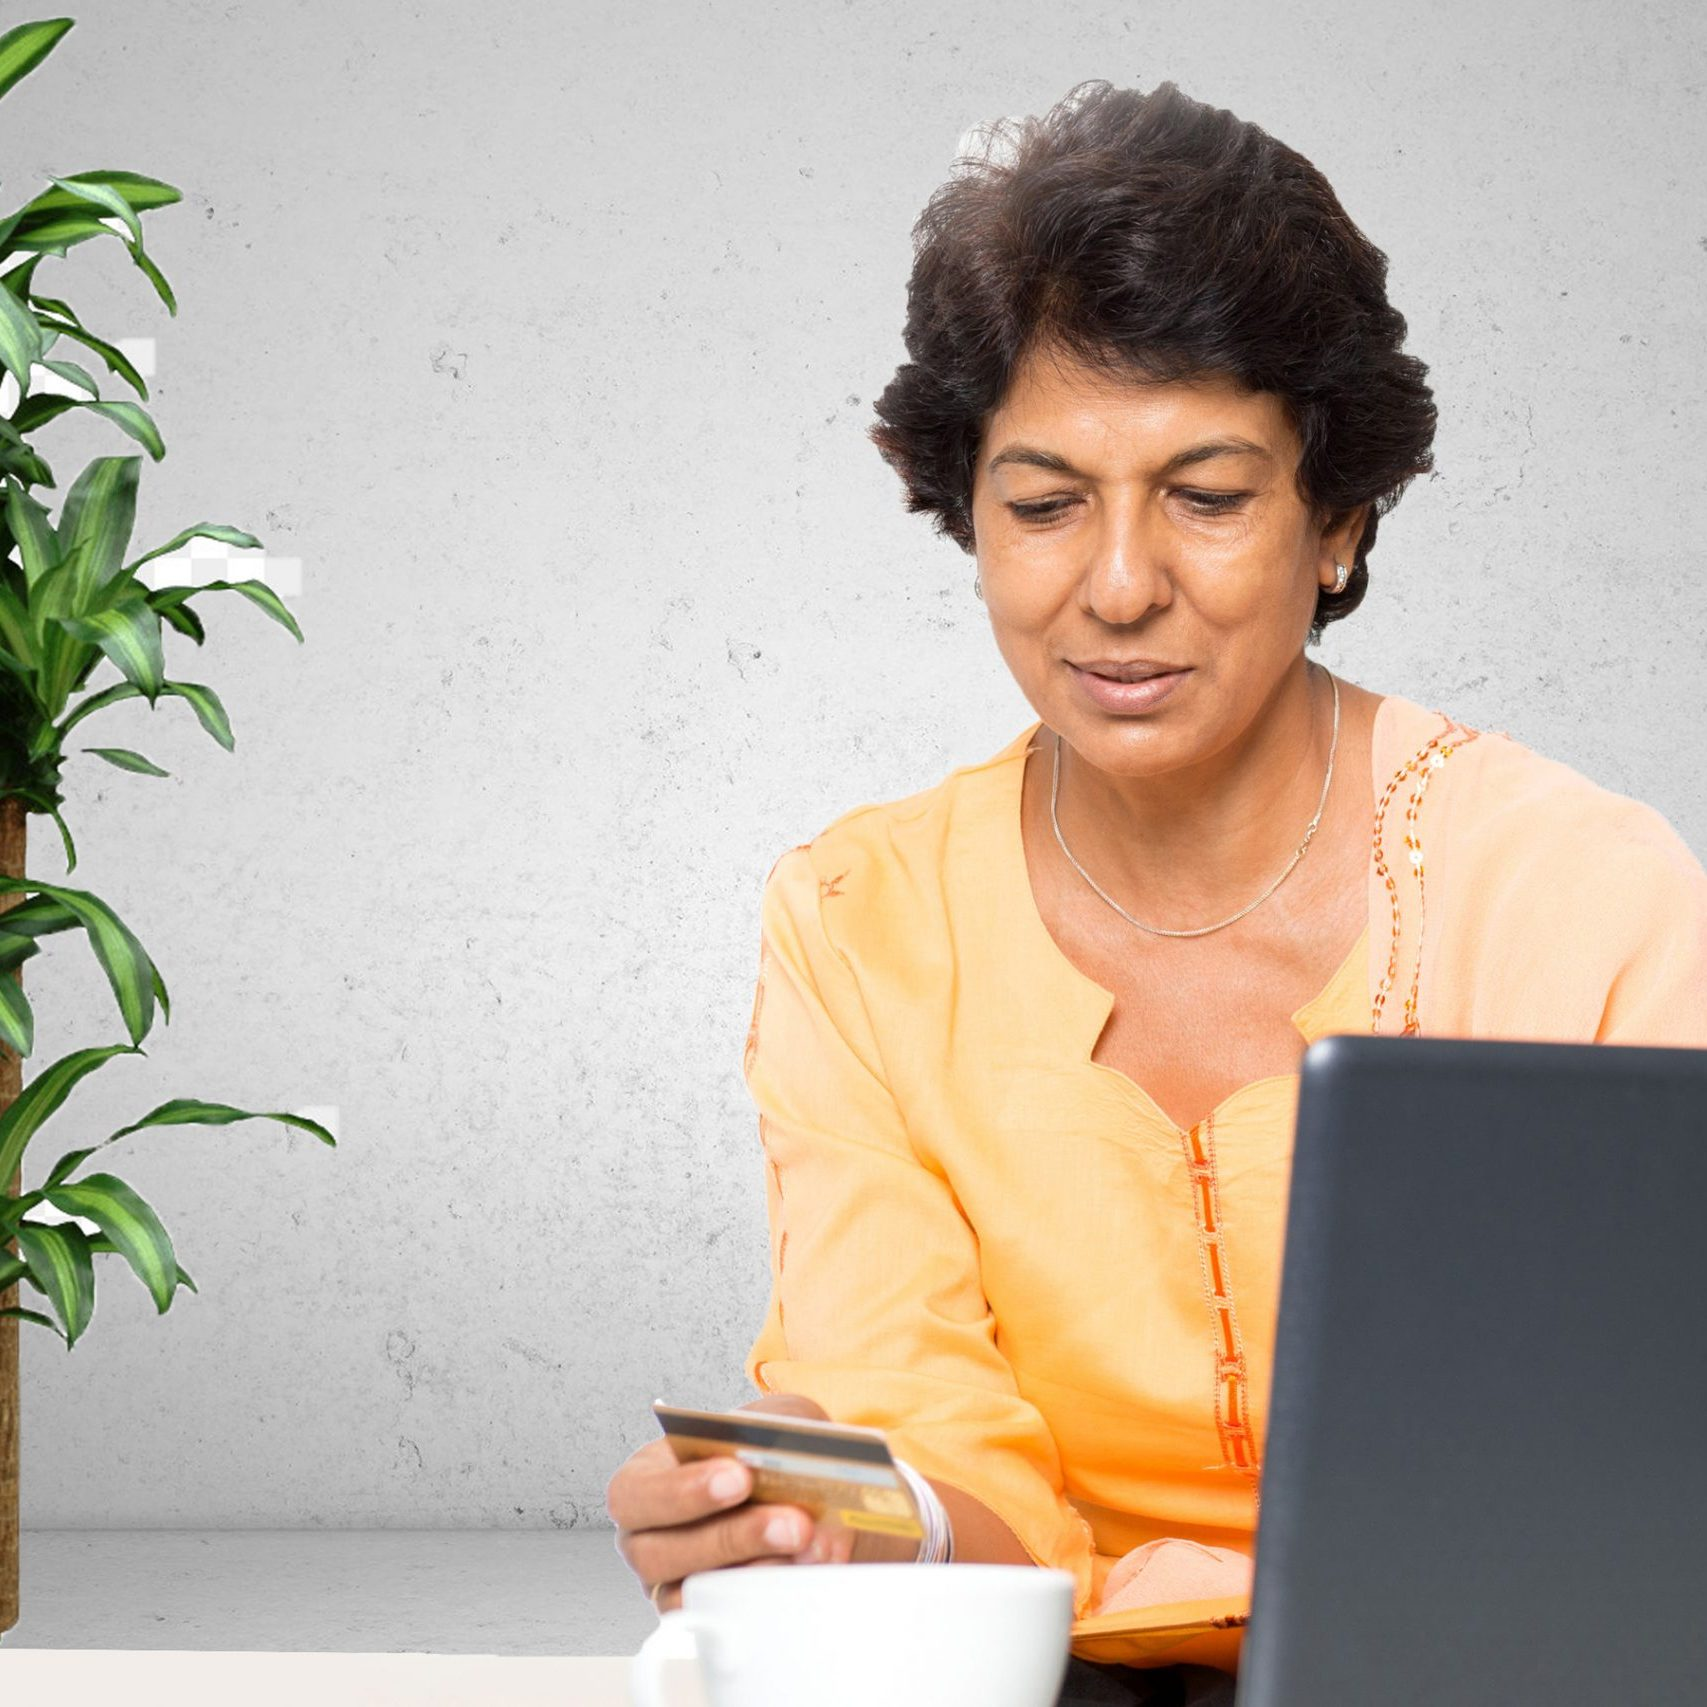 An elderly woman holding a credit card at her computer